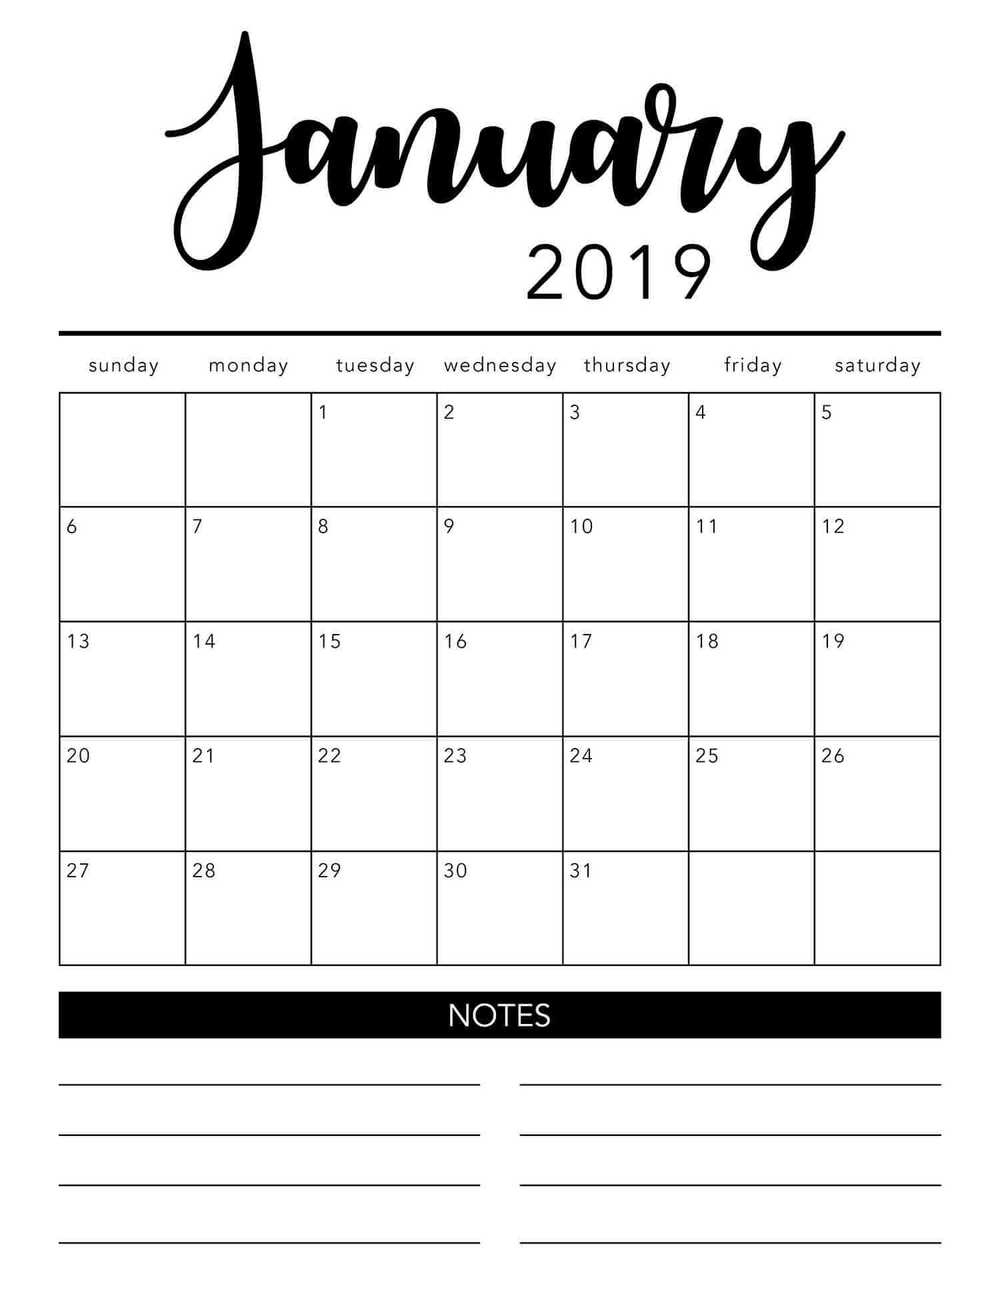 Free 2019 Printable Calendar Template (2 Colors!) - I Heart Naptime Calendar Month At A Glance Printable